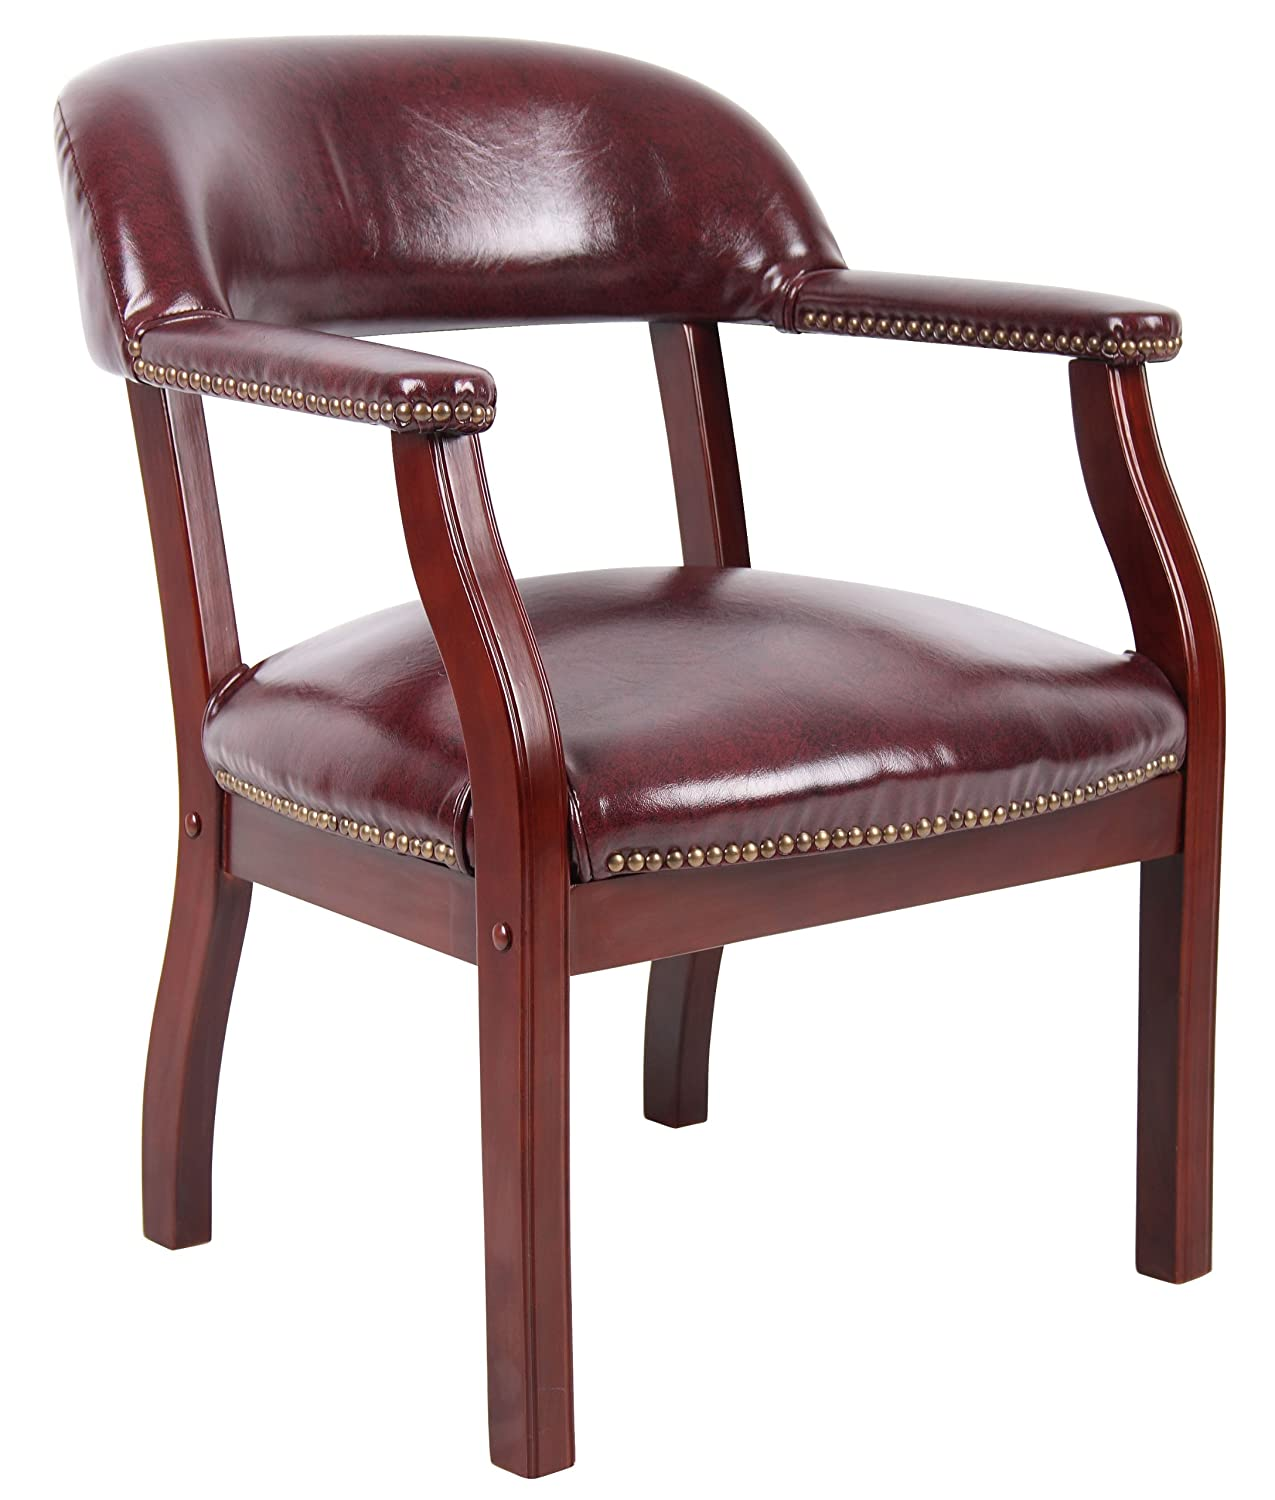 arm chairs beach chair bathroom accessories armchairs for heavy people  big men rated and